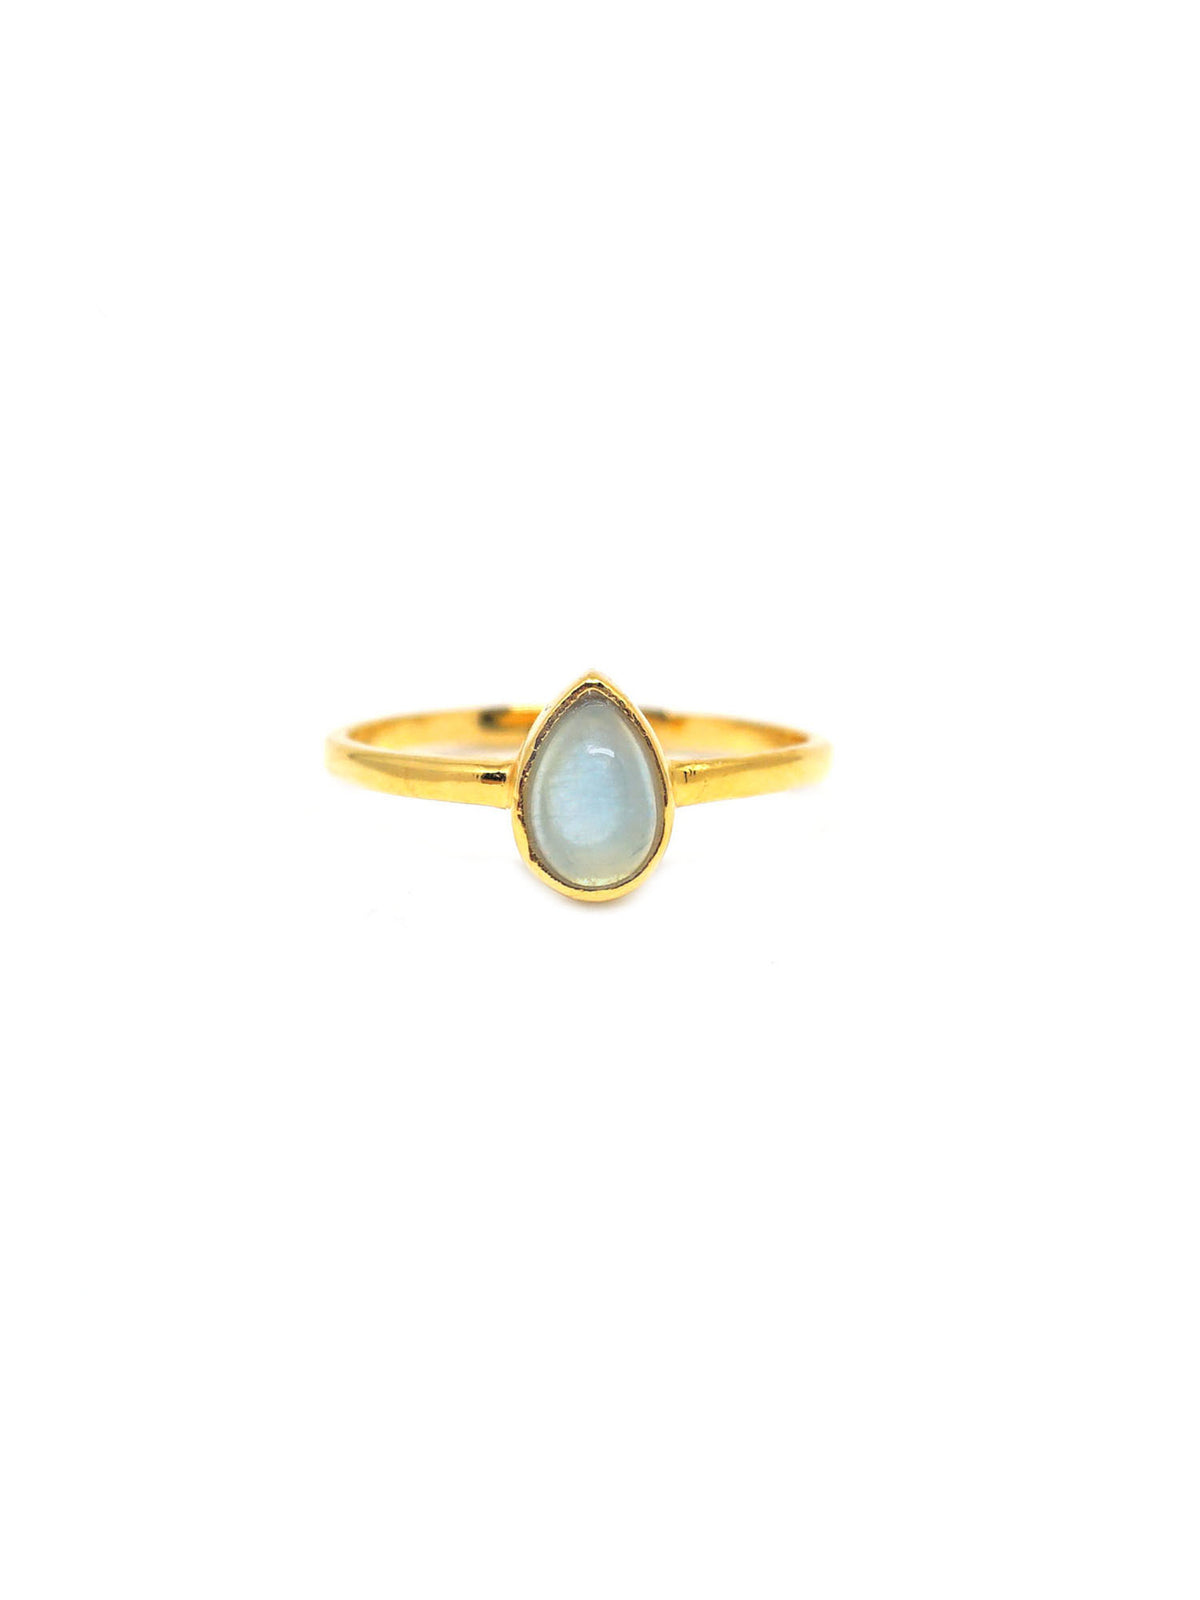 Dew Drop Ring - Gold - Blue Apatite